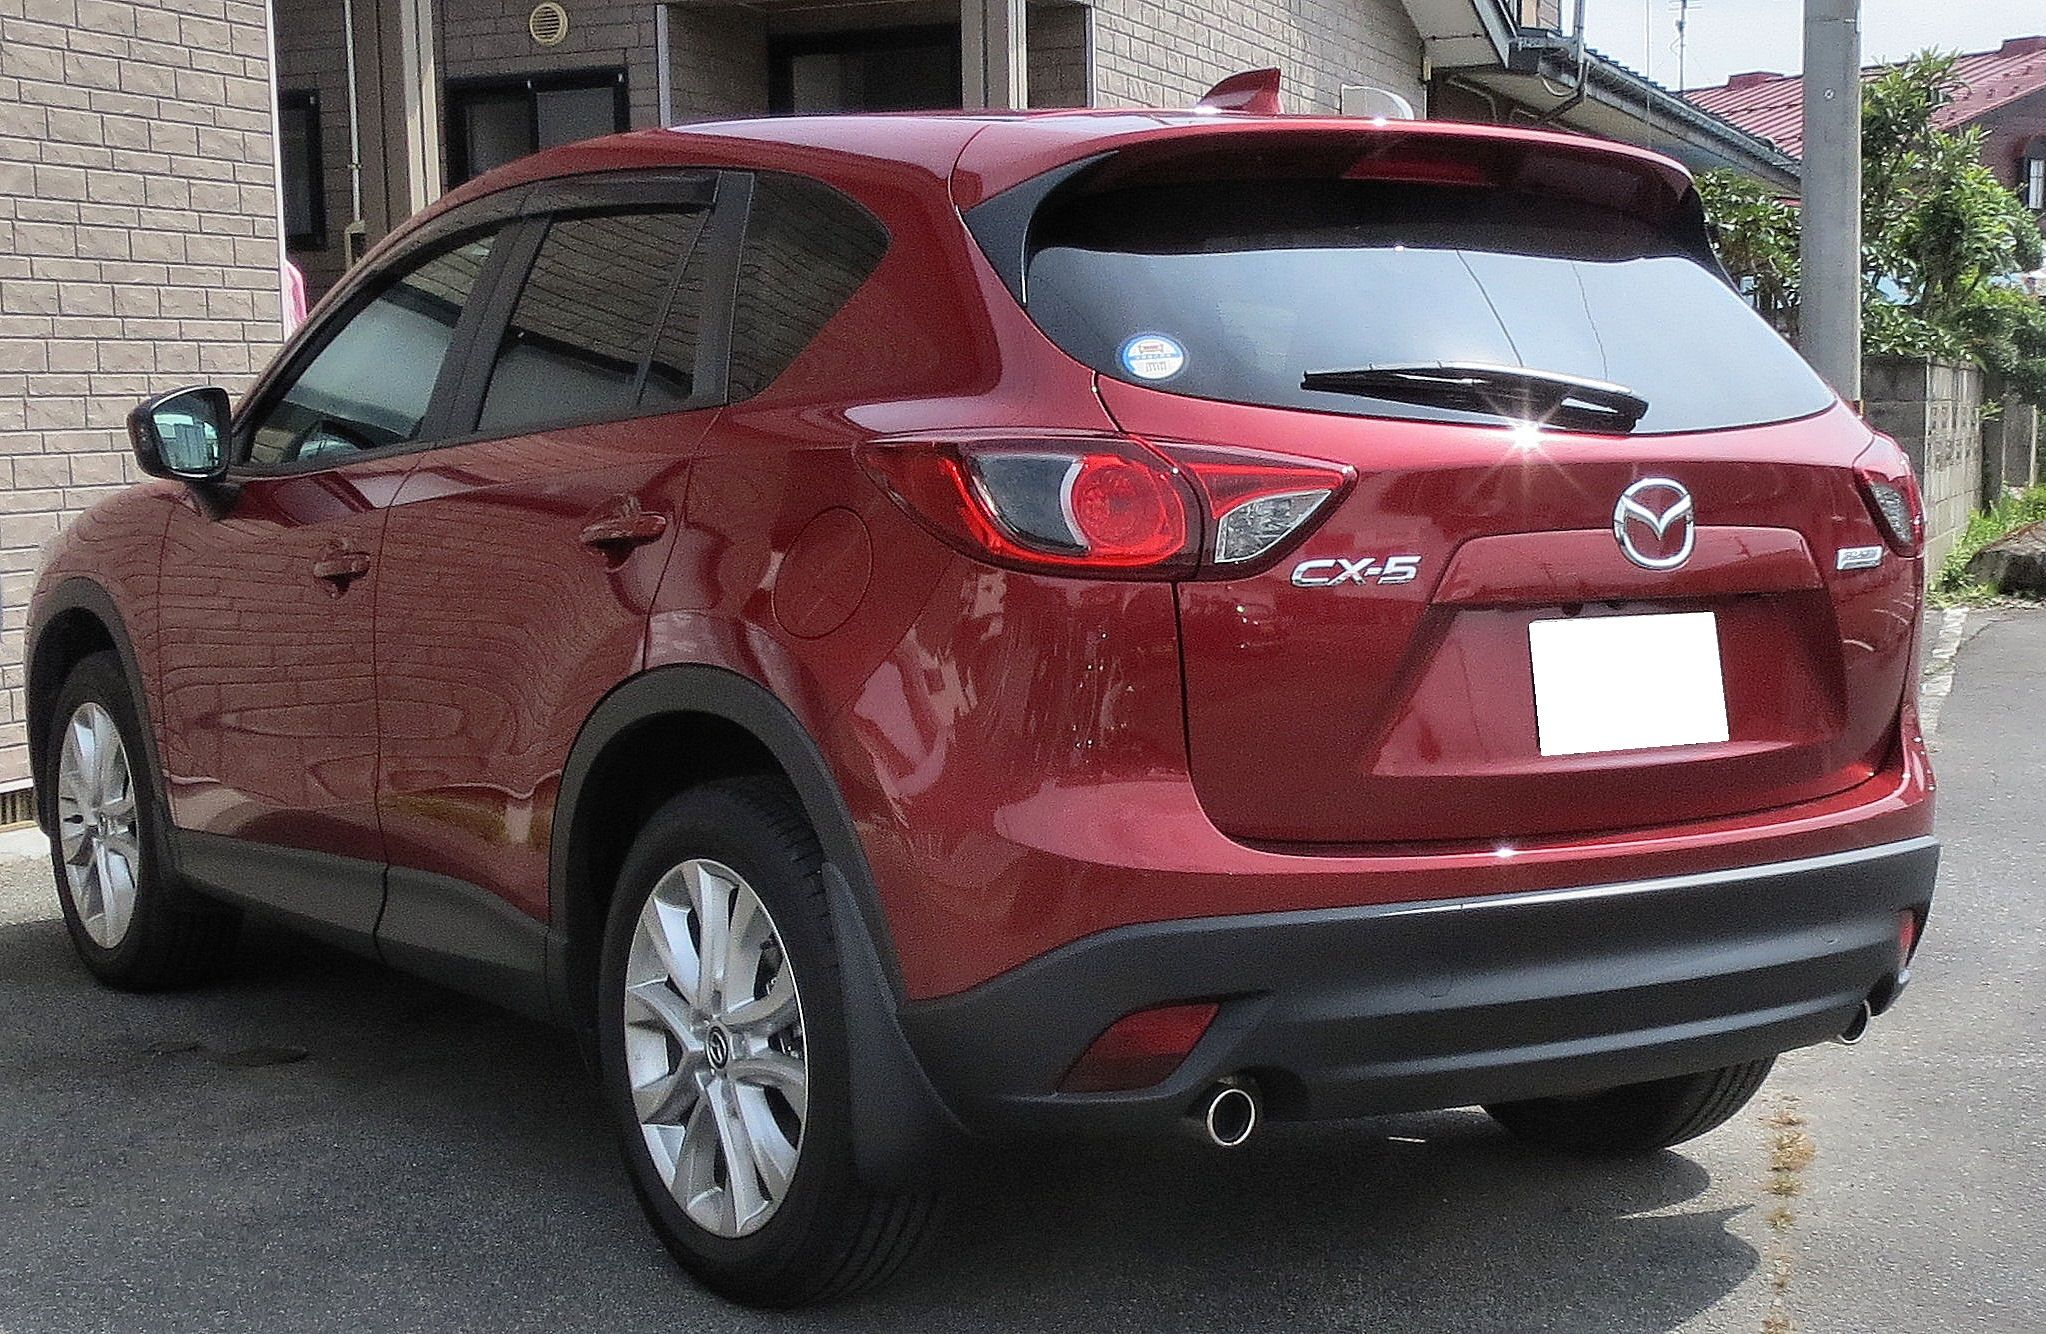 loss of power on a 2013 mazda cx5 check out rh pinterest com Mazda CX-5 Owners Manual Mazda SUV